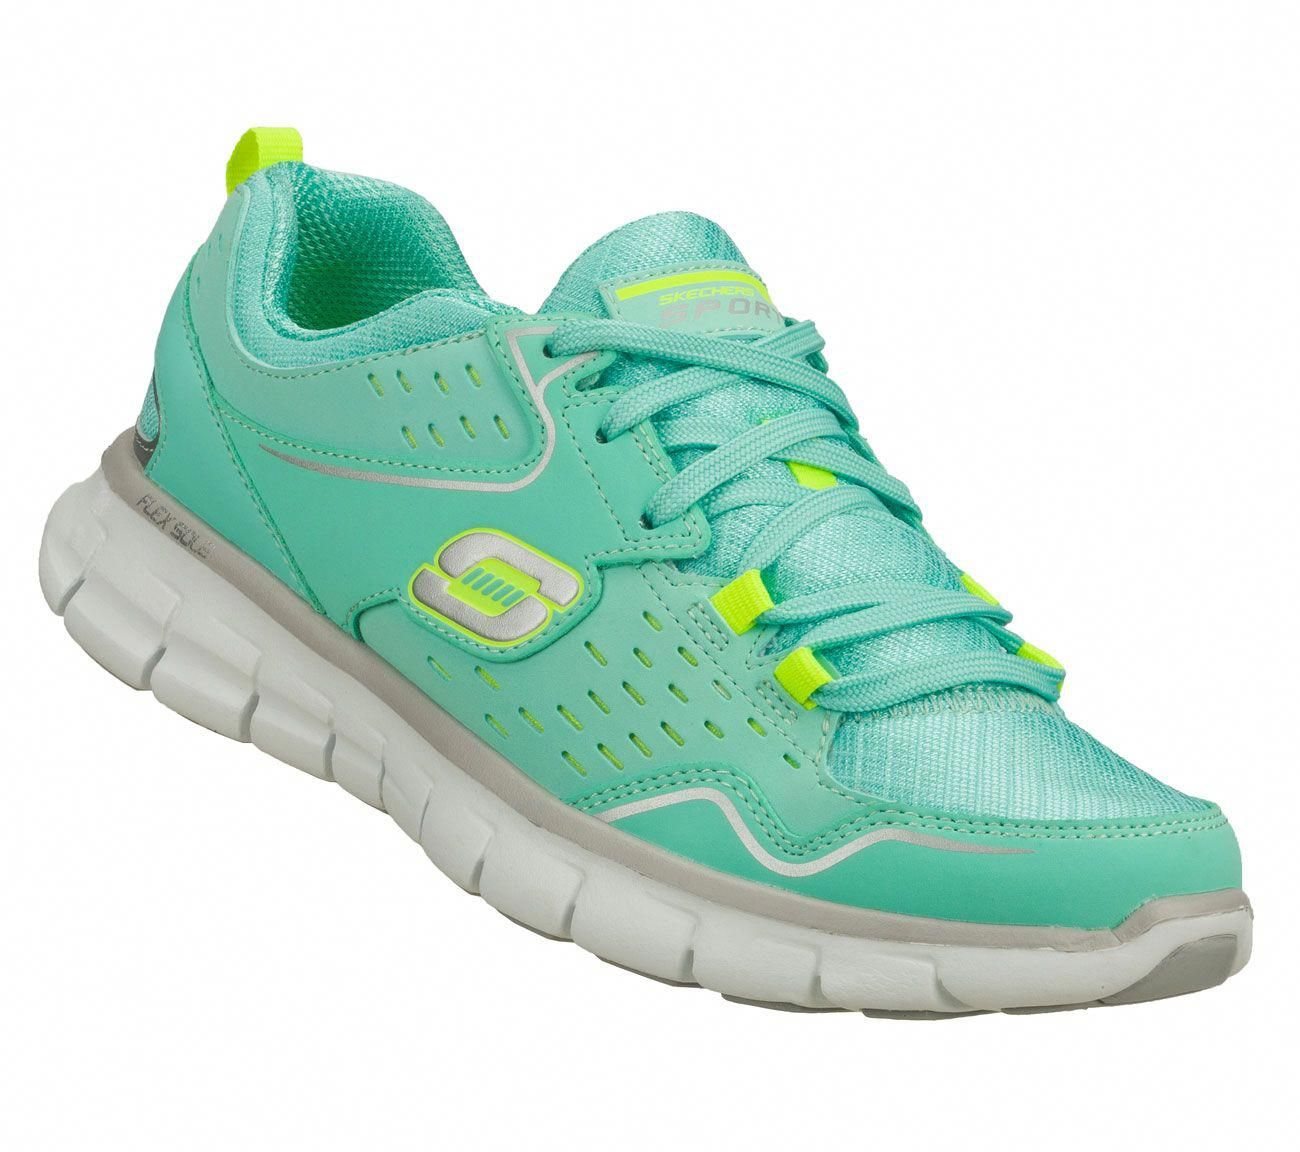 on sale 88016 018ed SKECHERS Women's Synergy - A Lister Athletic Sneakers ...